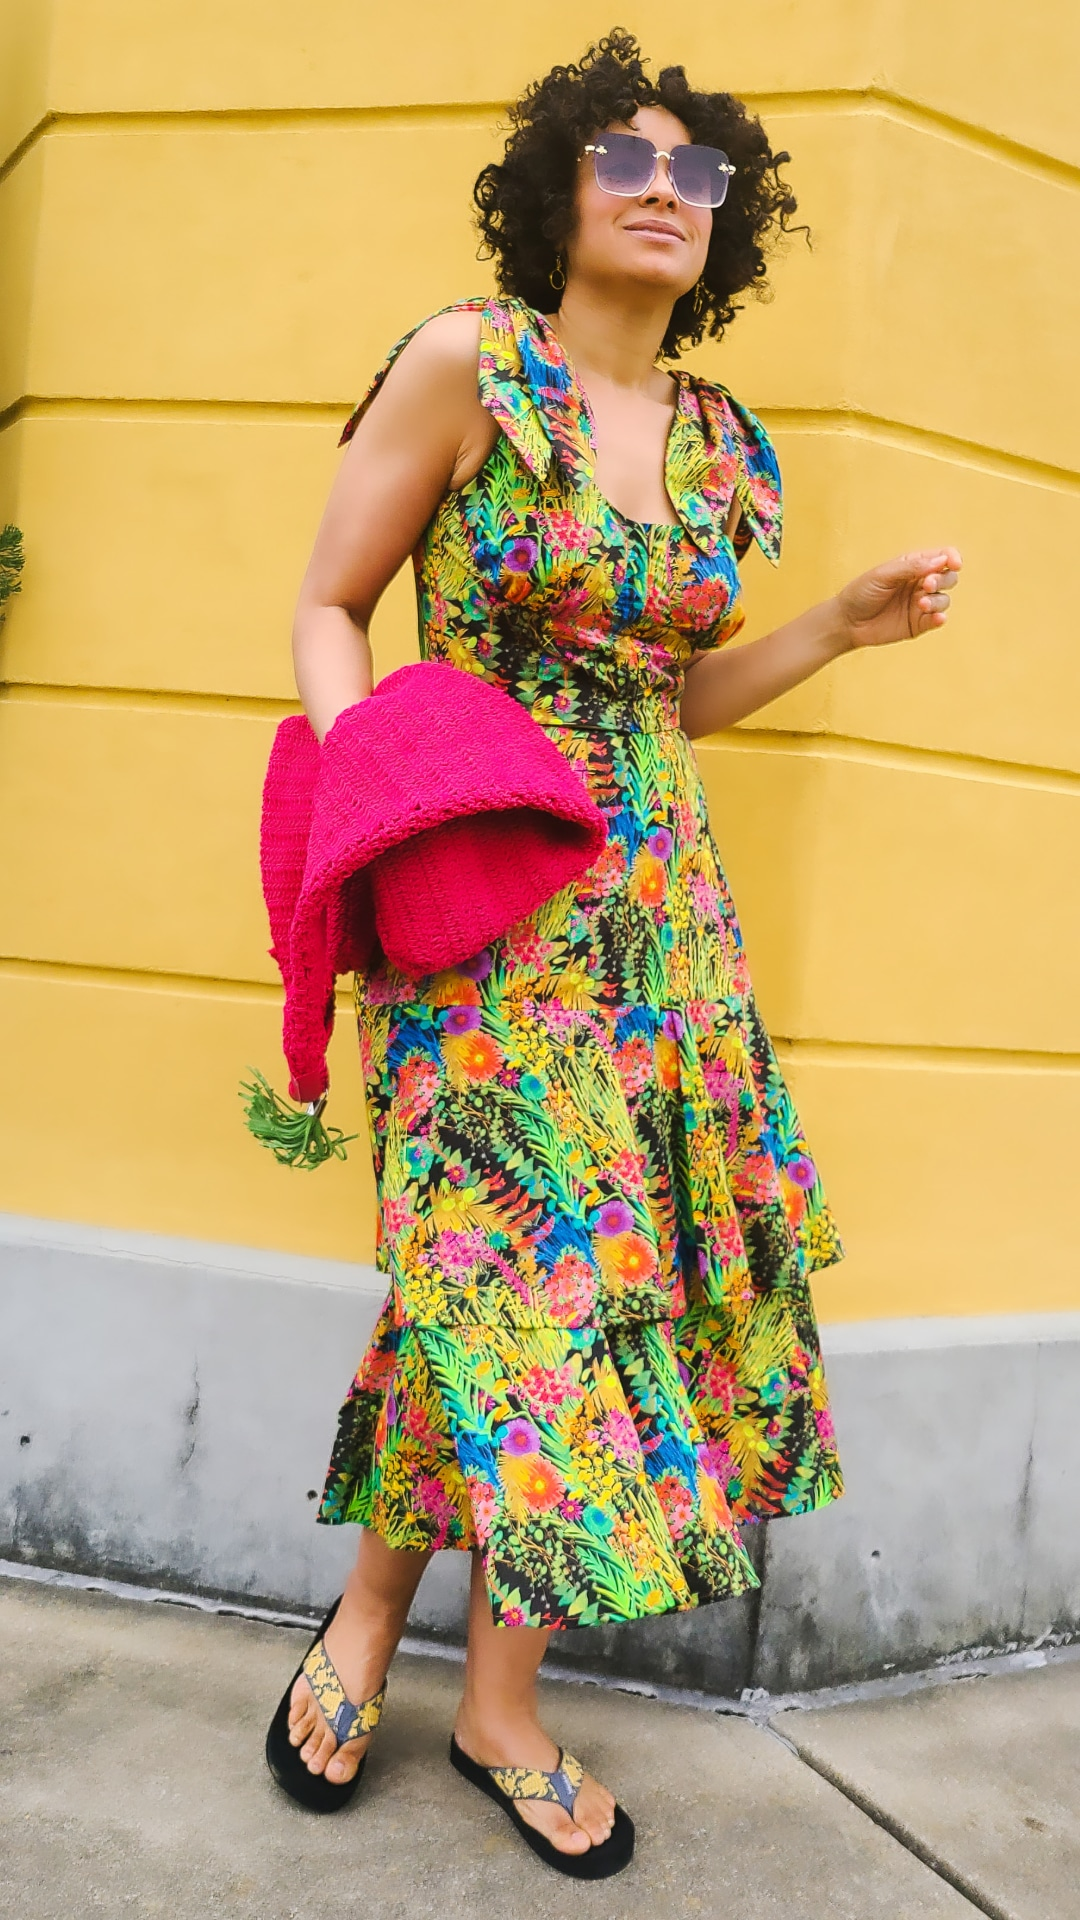 Marcia Spencer @keechiibstyle in a printed dress, with hot pink accessory